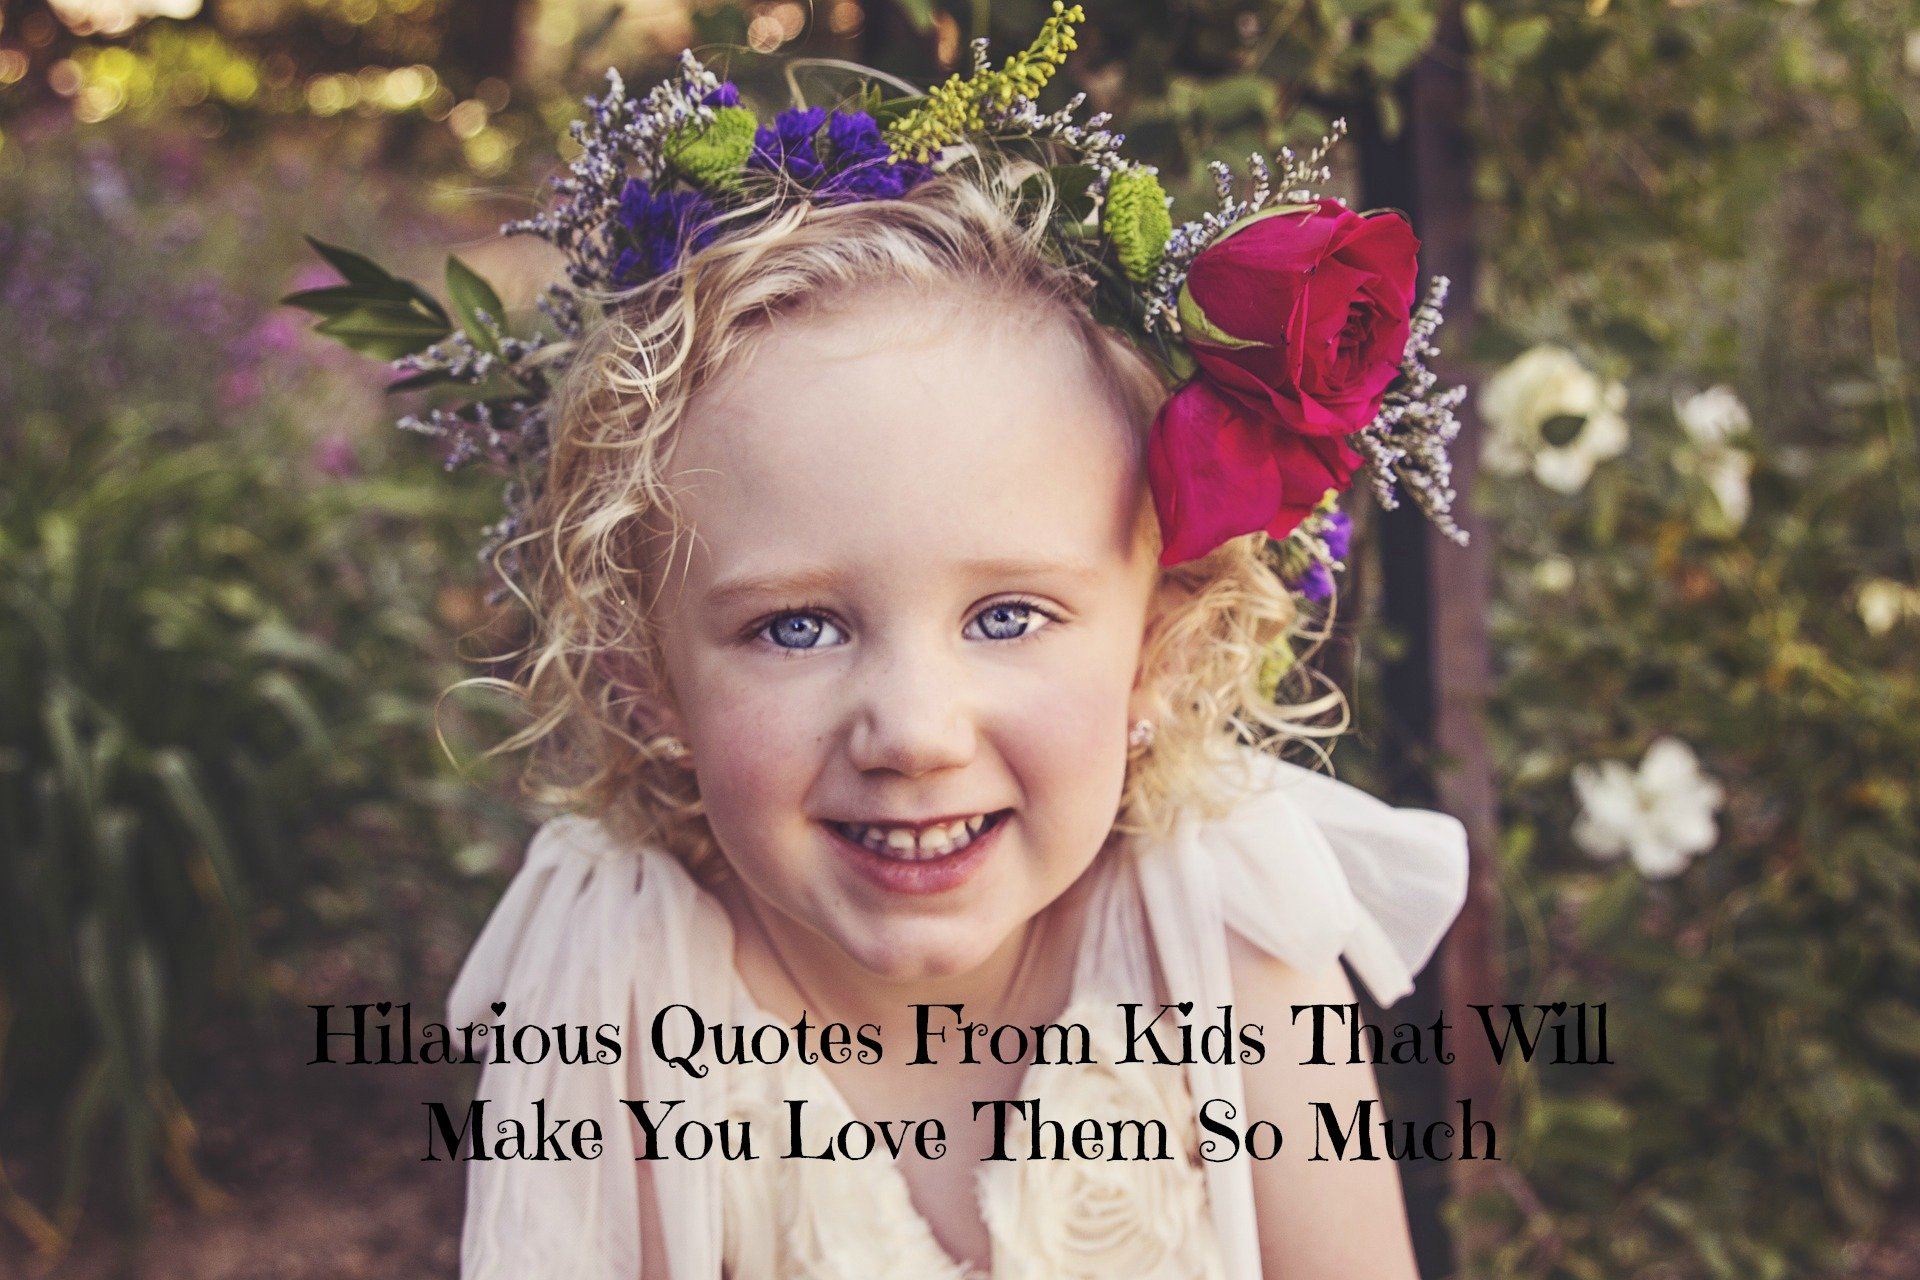 Hilarious Quotes From Kids That Will Make You Love Them So